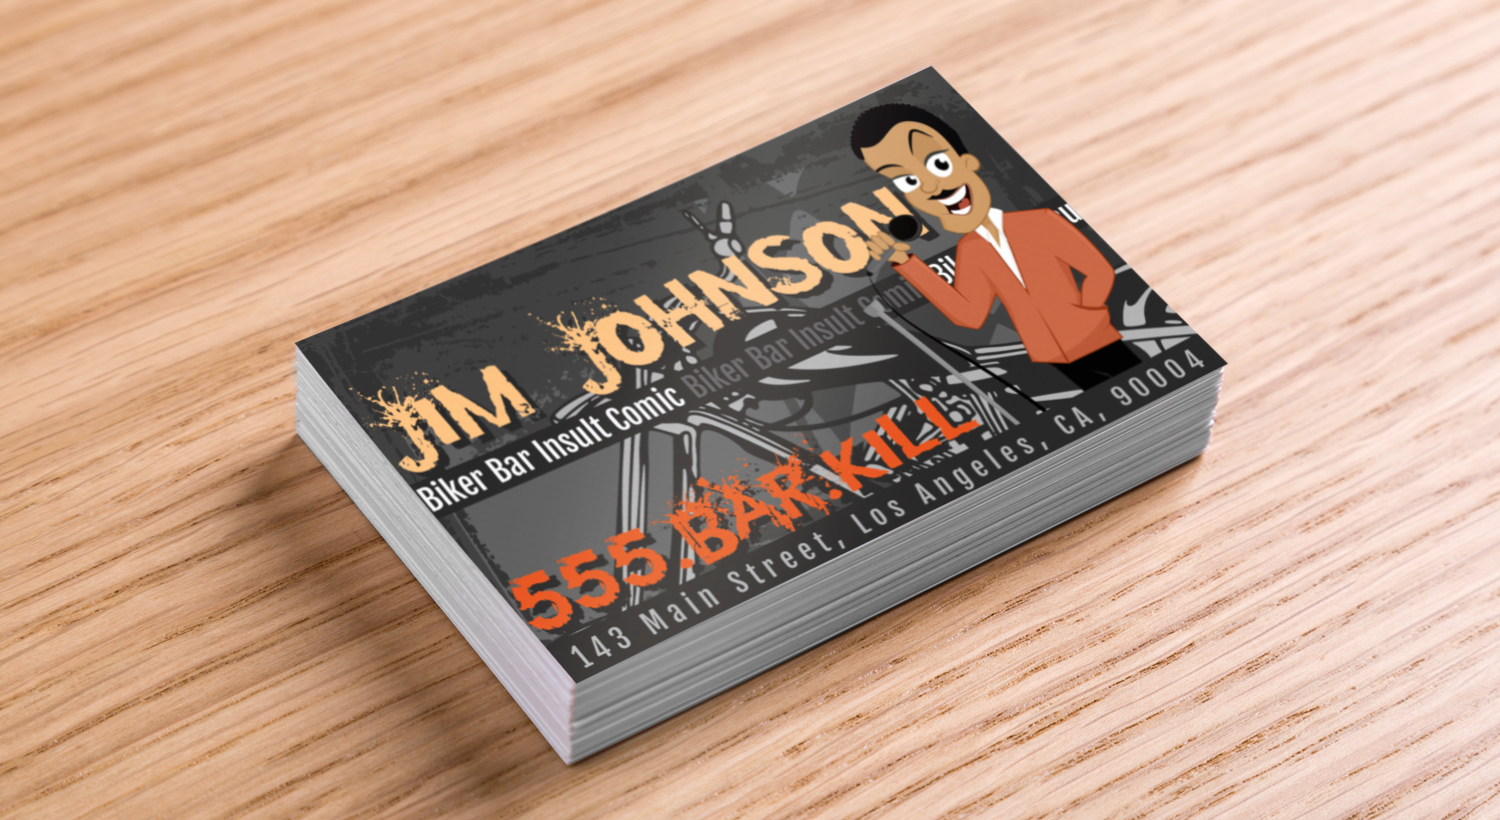 Insult comic business card